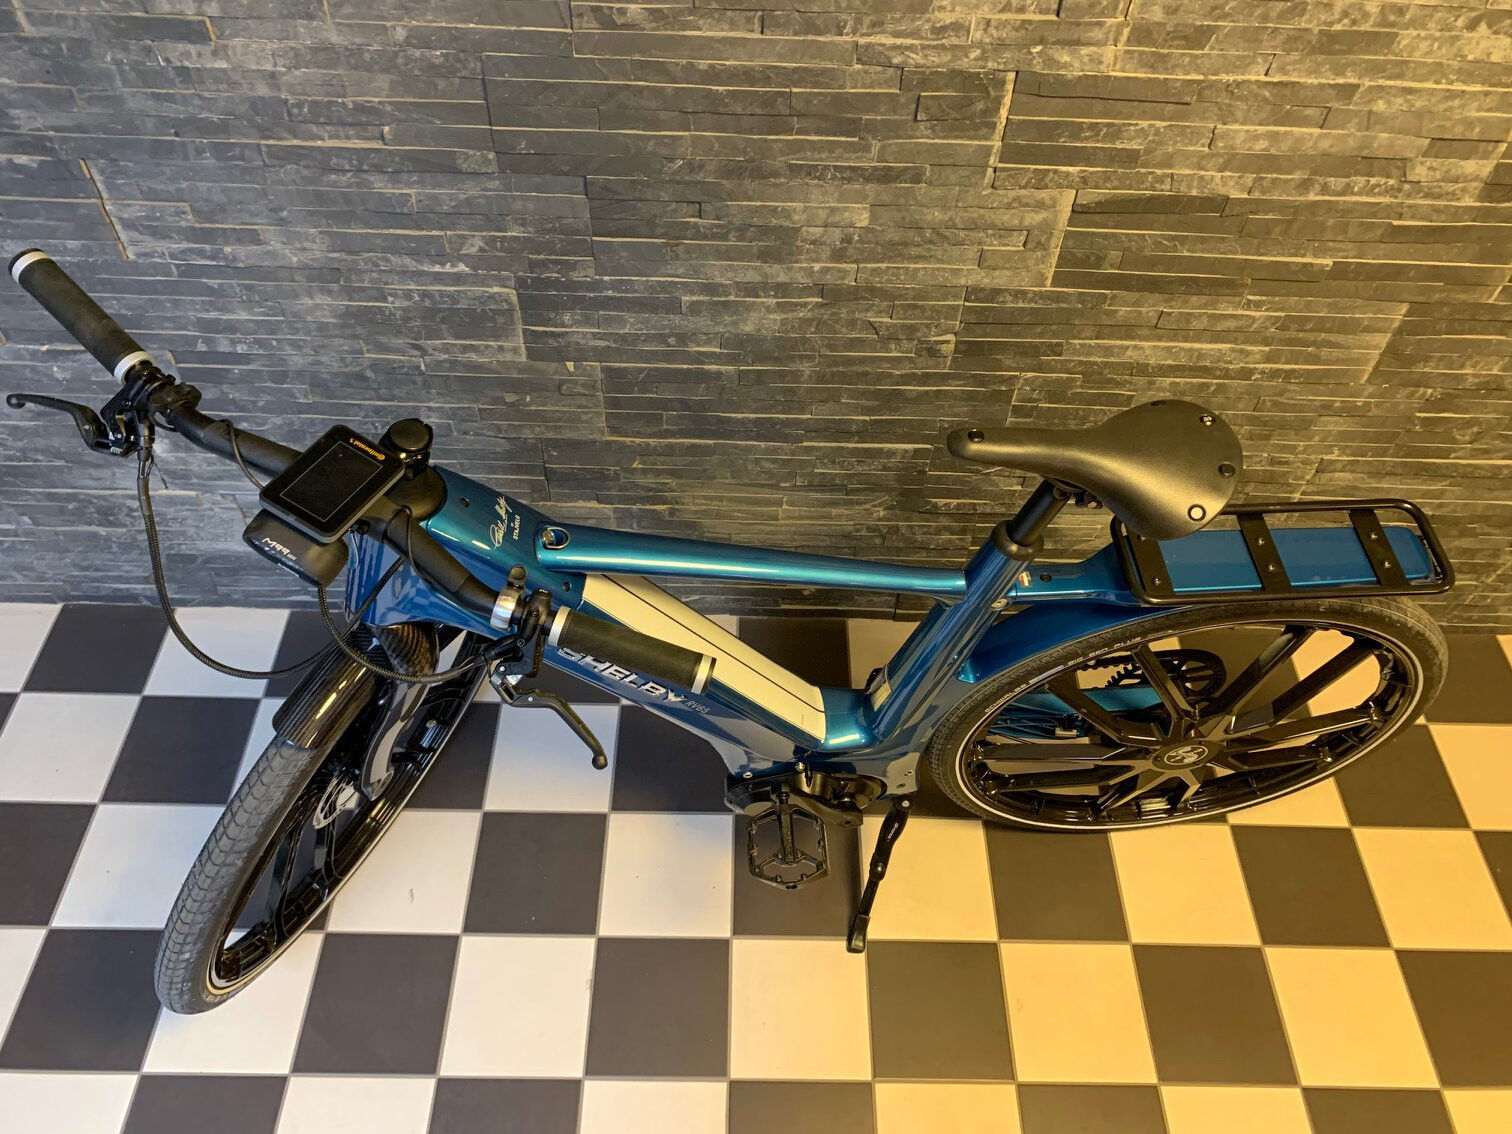 Ford Autre E-Bike number 4 of 650